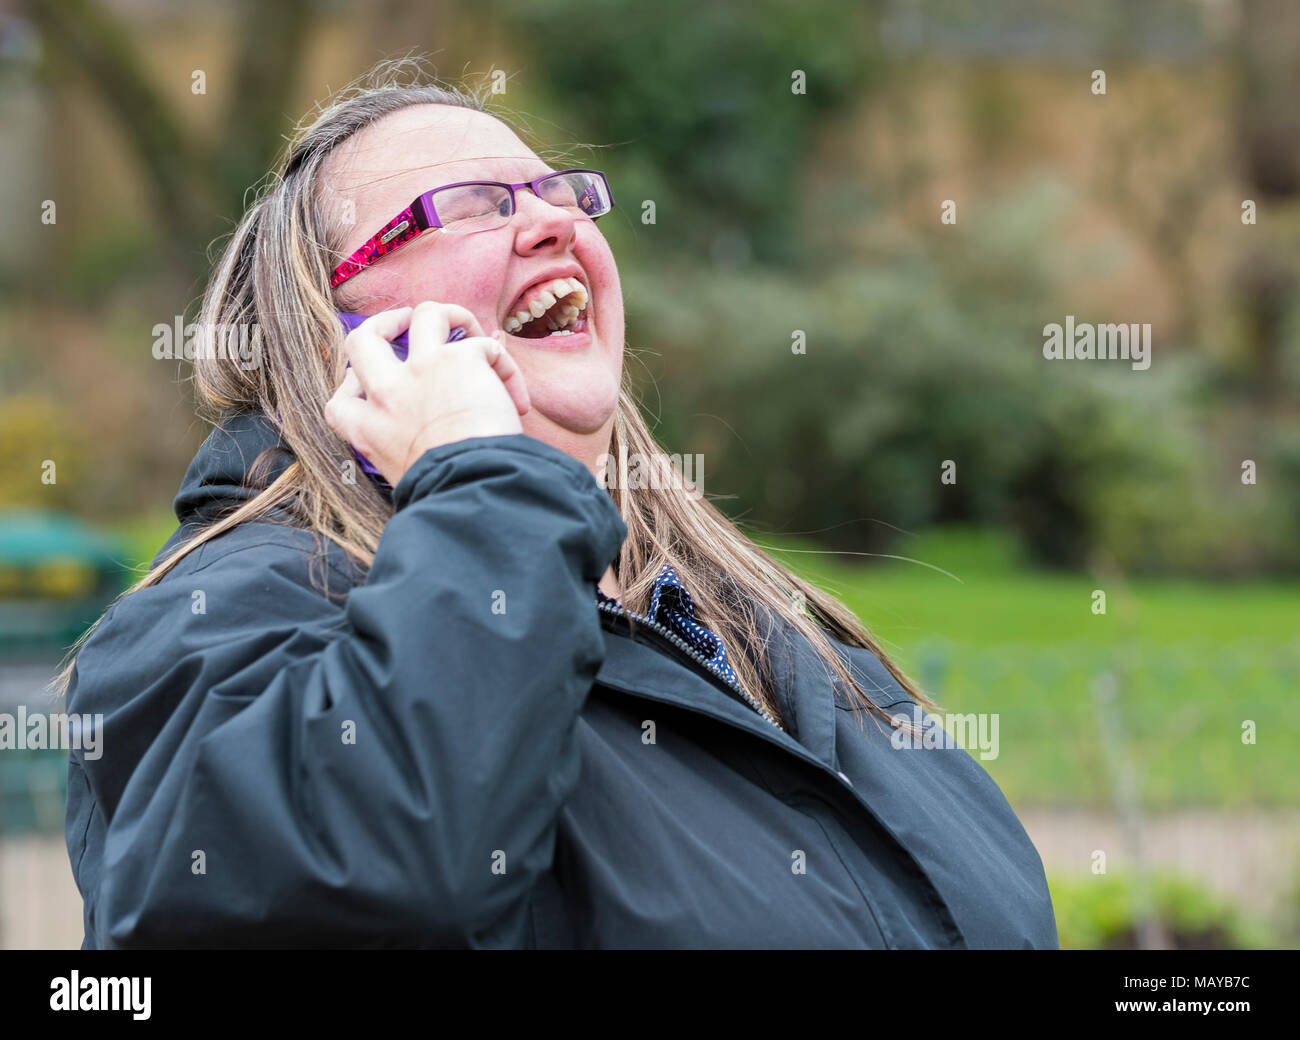 Young woman laughing and looking happy while enjoying a telephone conversation with a friend. Happiness concept. Having a laugh. Laughing with friends. - Stock Image